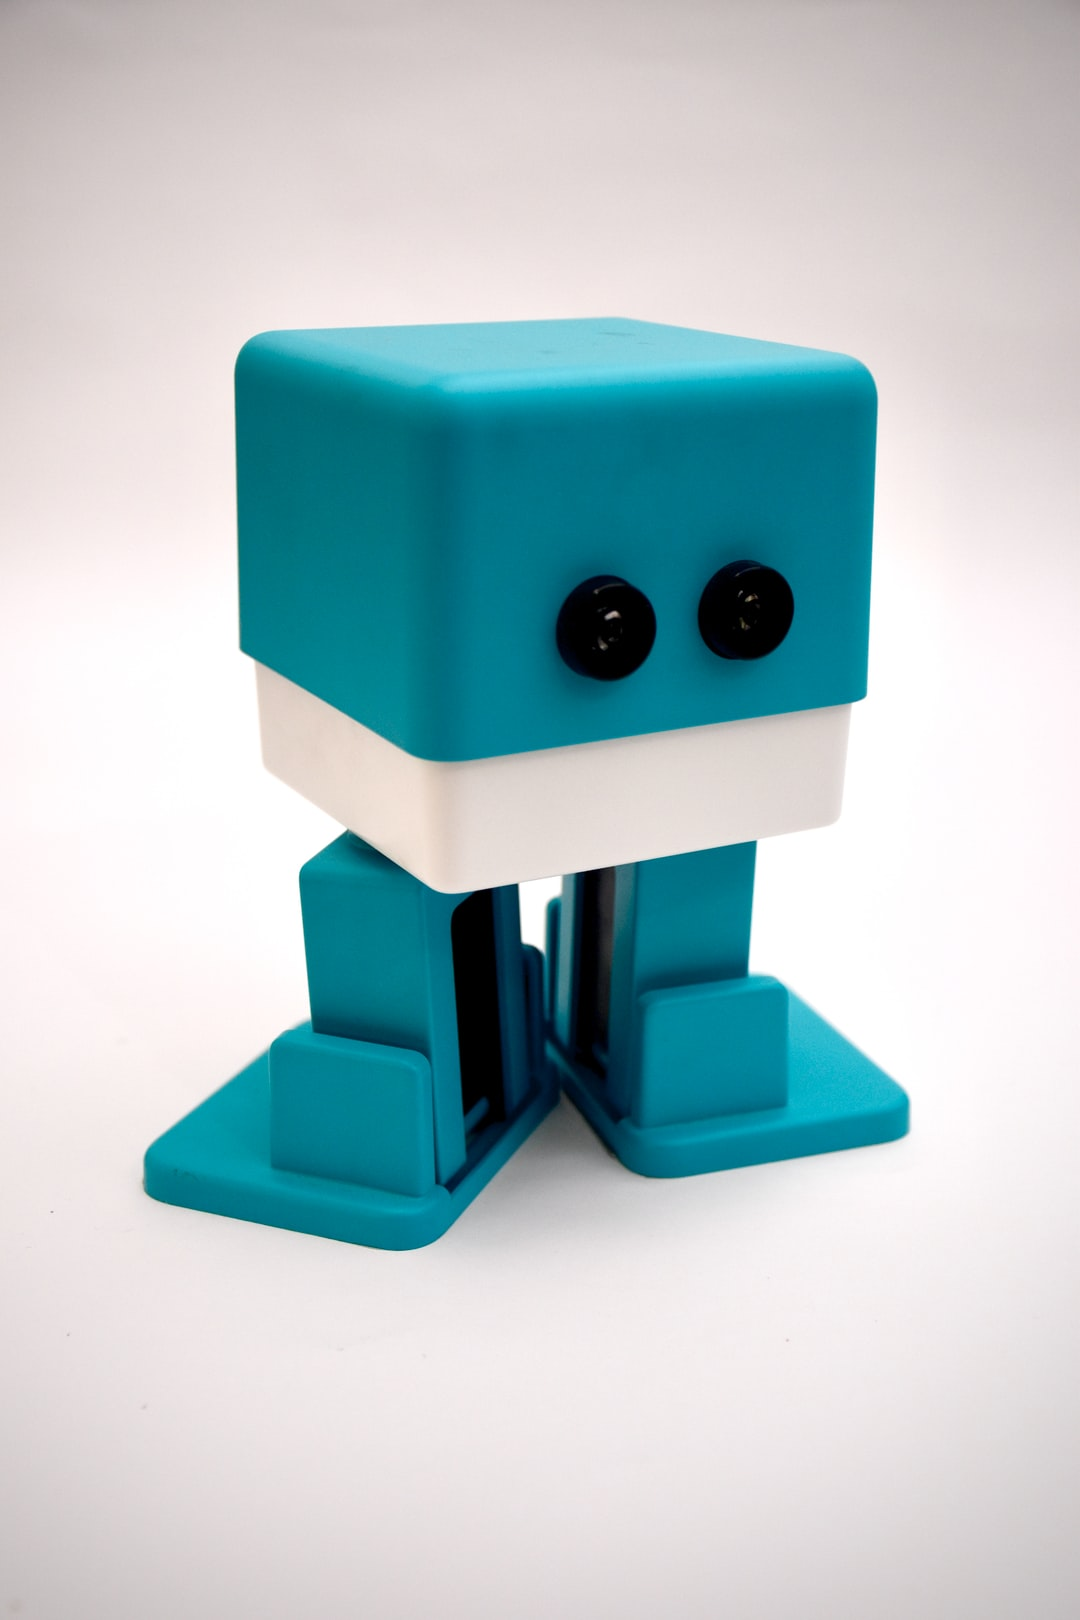 Zoe robot from España. It is a pretty nice little thing - and it moves and it smiles.